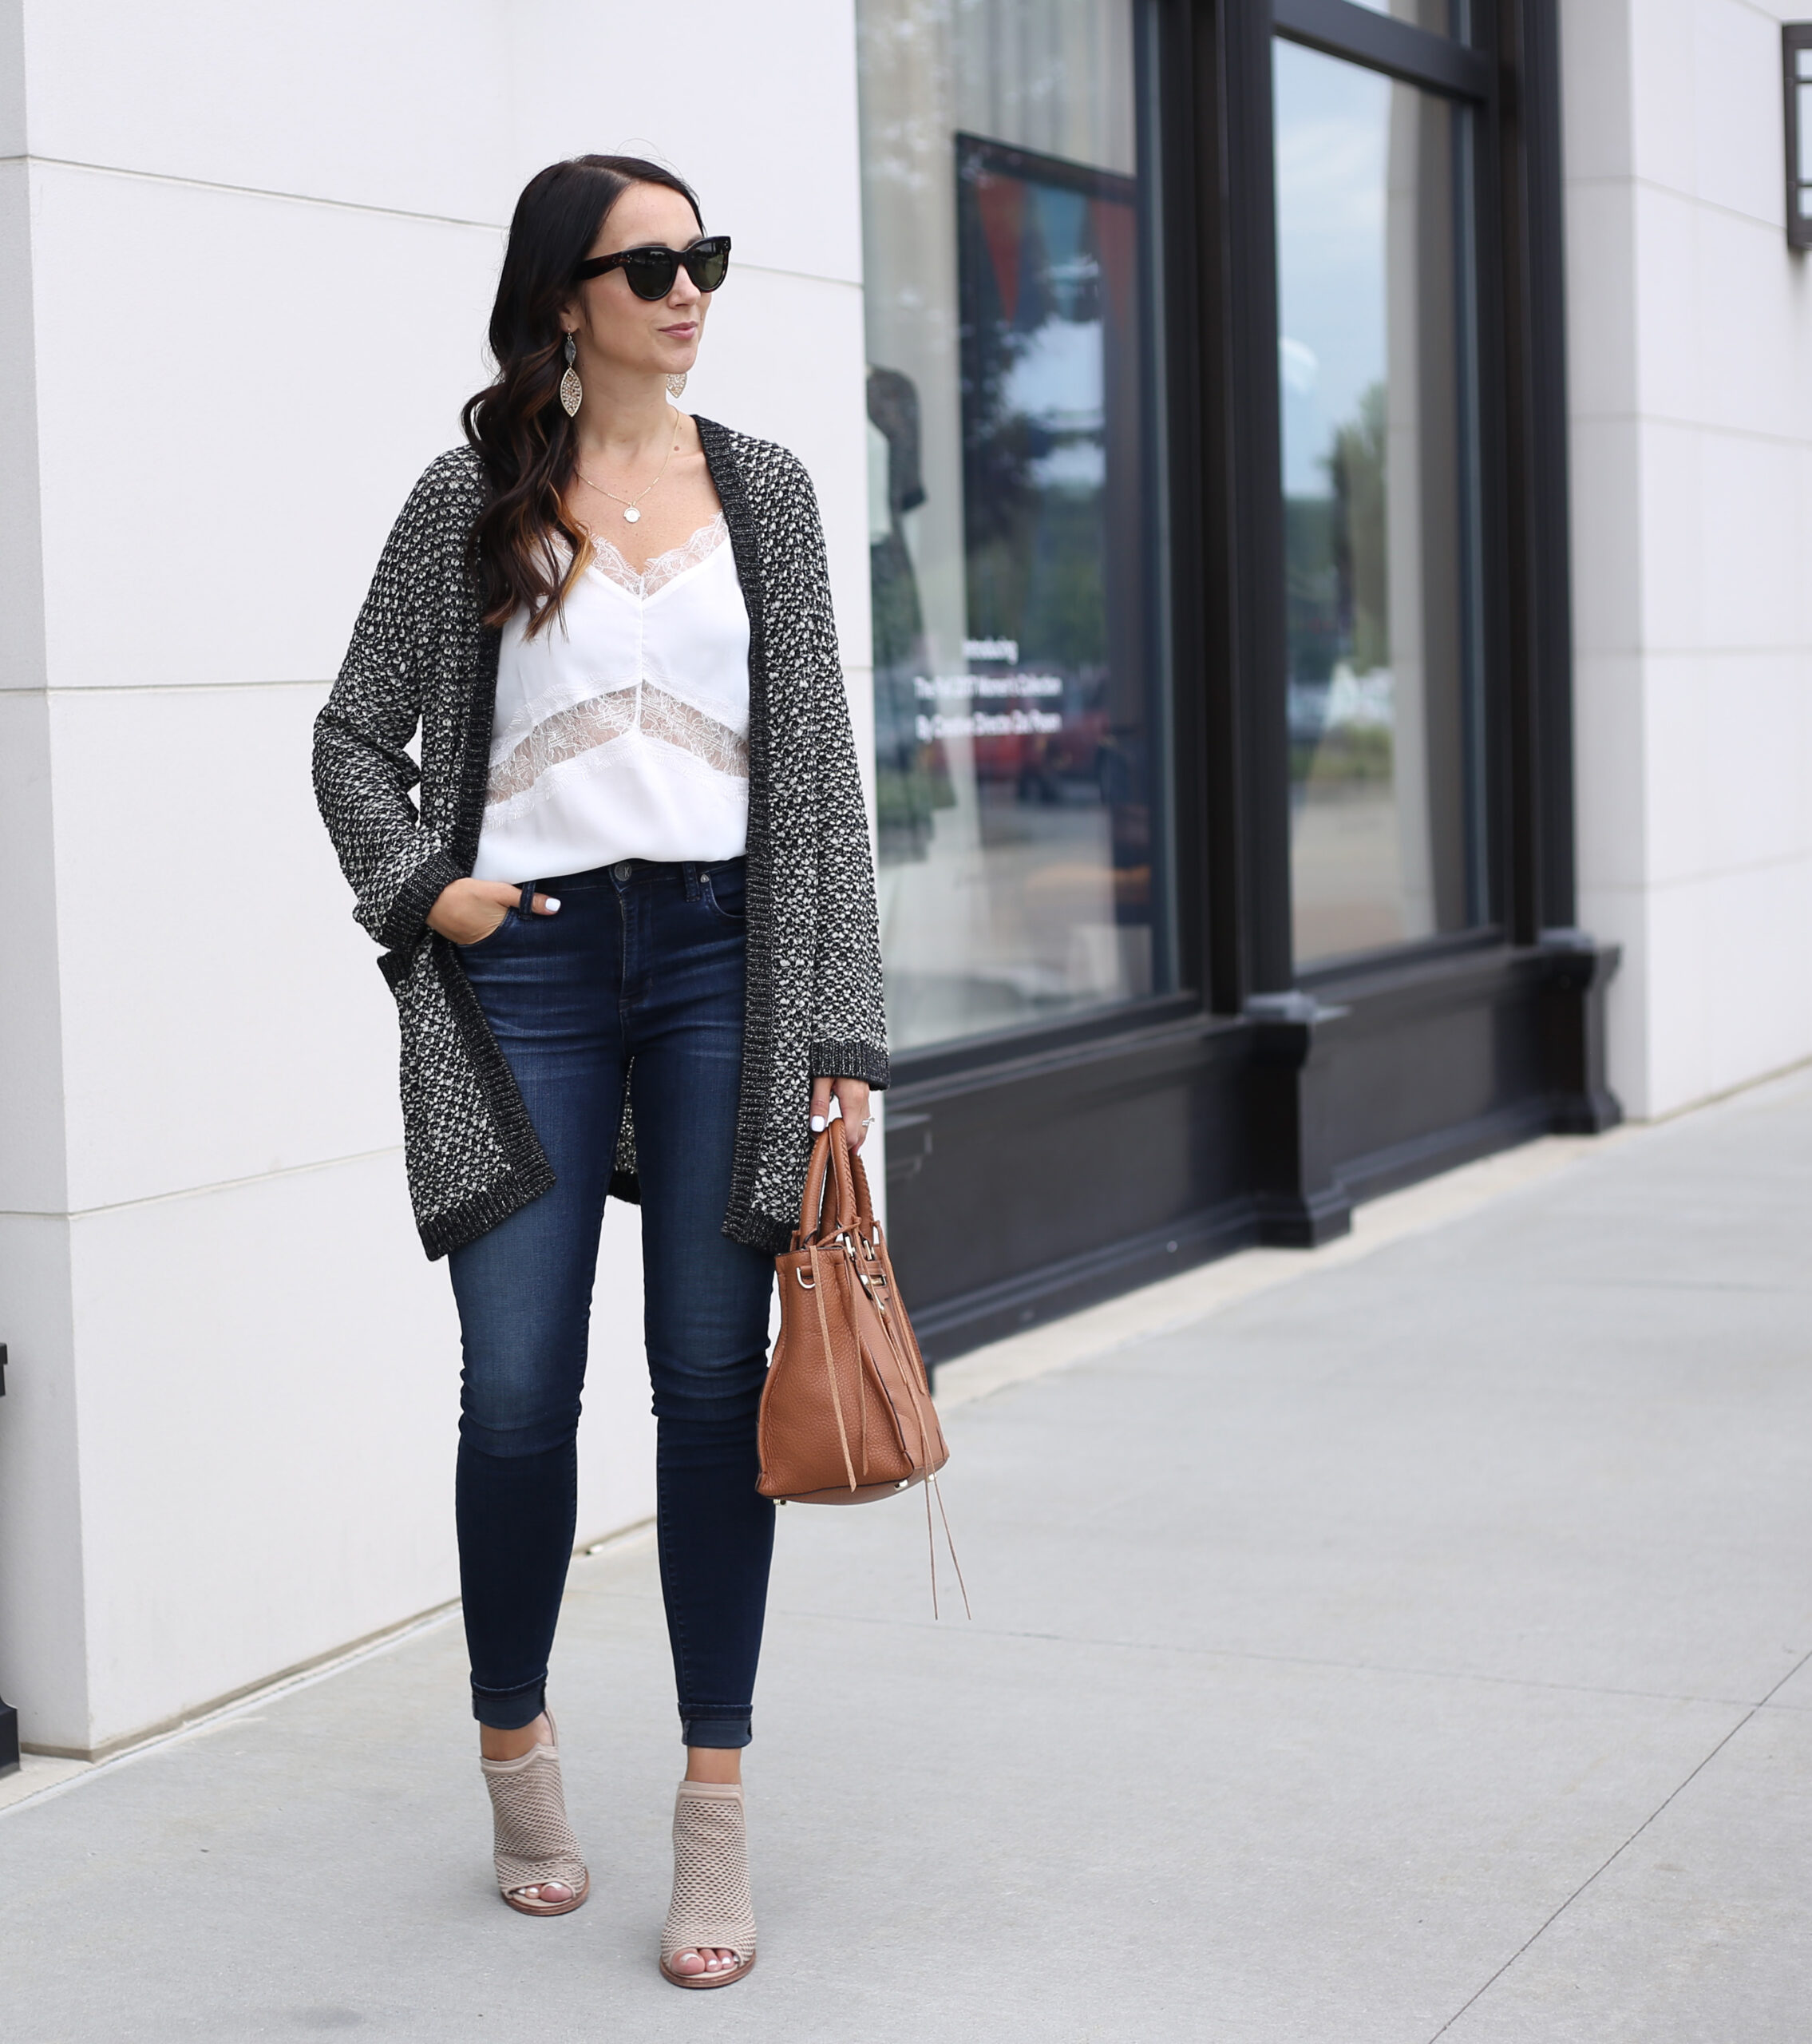 fashion blogger Anna Monteiro of blushing rose style blog wearing perfect fall cardigans caslon textured boyfriend cardigan and lace trim camisole with rebecca minkoff regan satchel from nordstrom